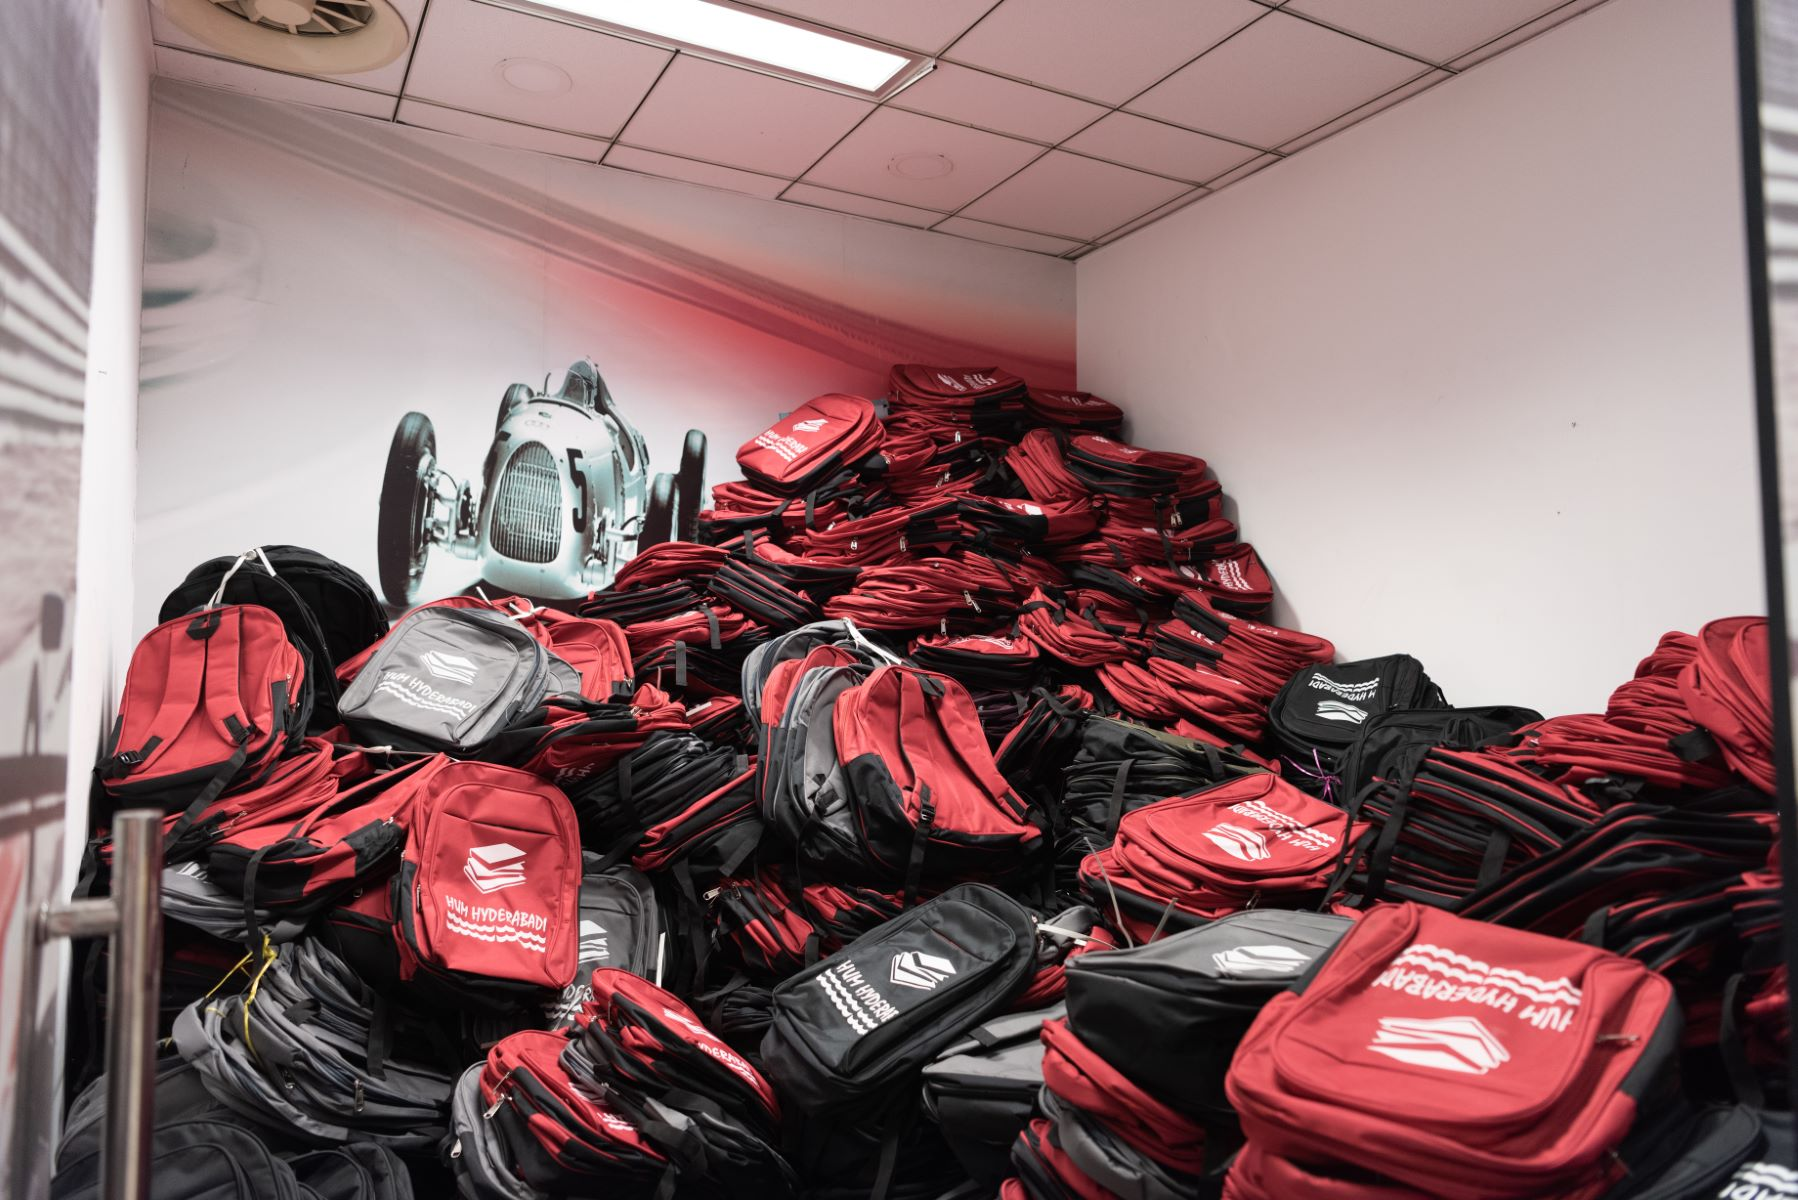 Special school kits were created for children to replace school bags destroyed in the floods